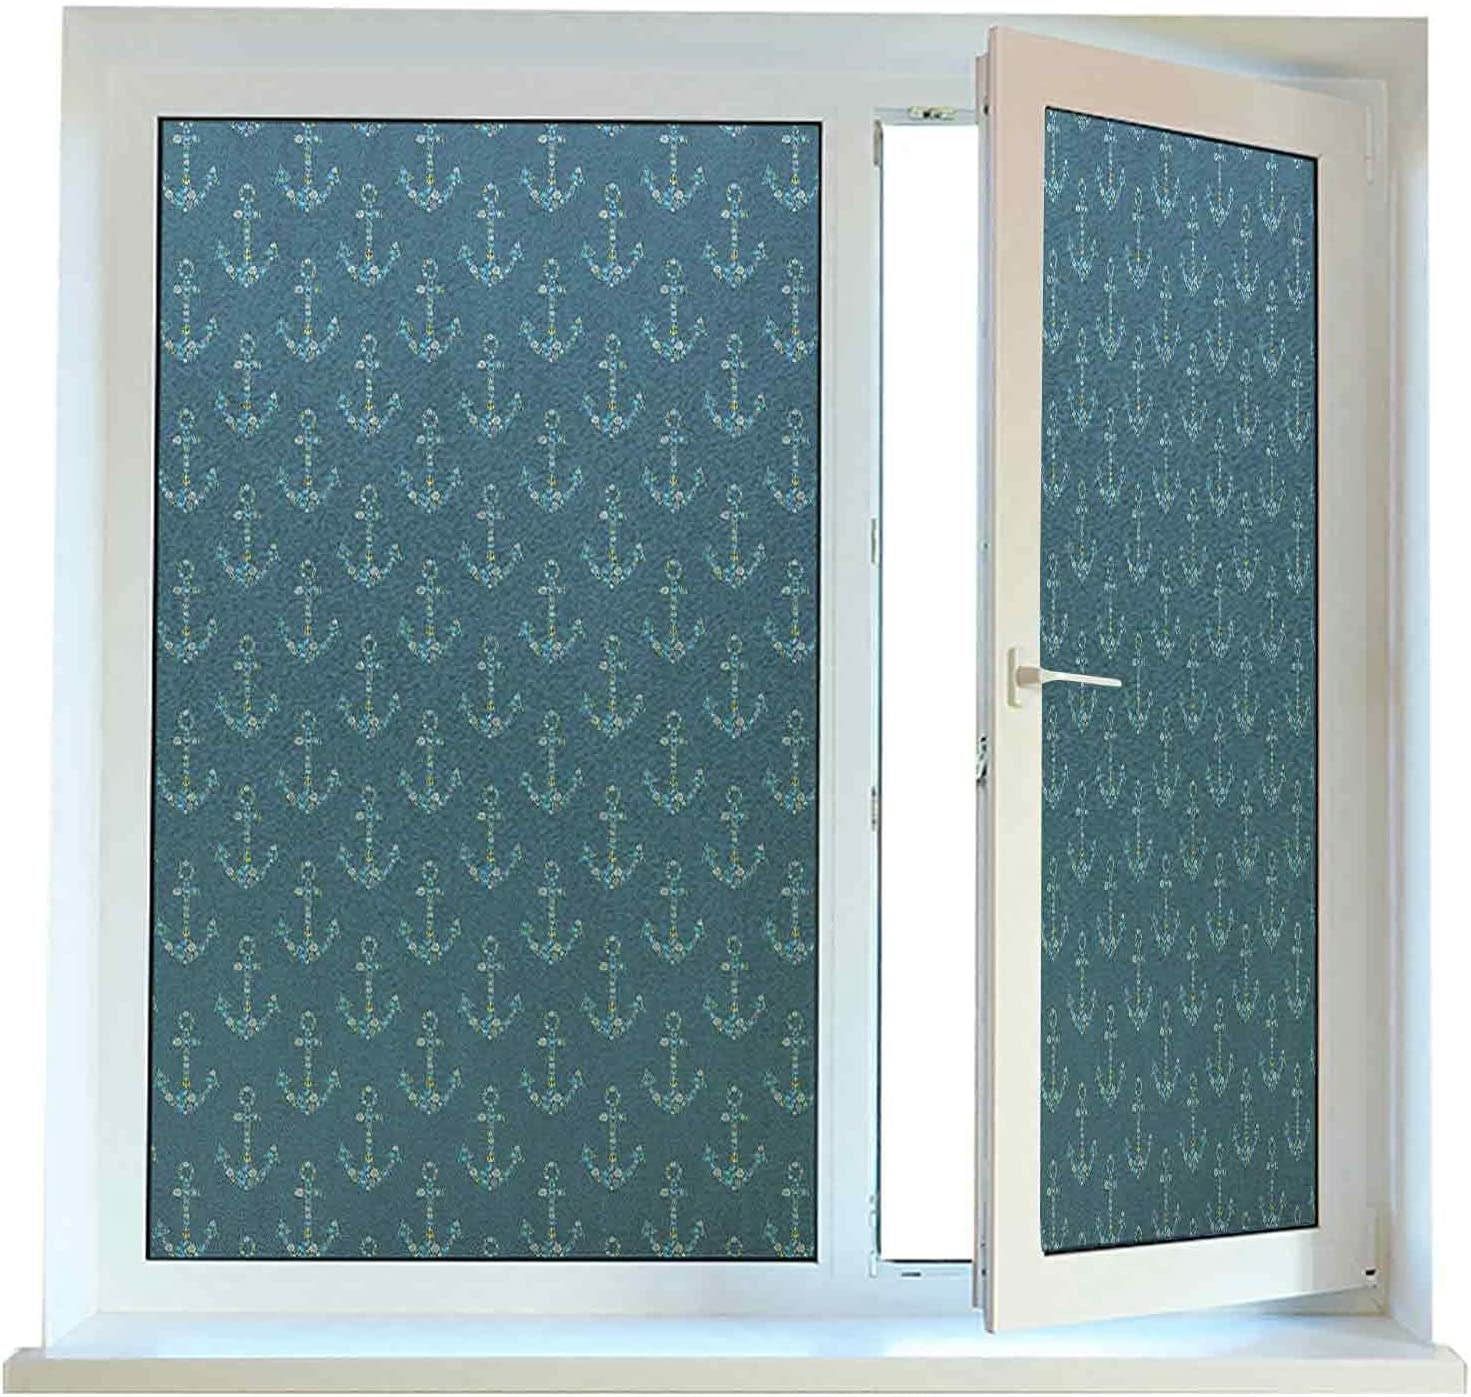 Decorative Window Films for Glass Anchor Window Covering Film 24